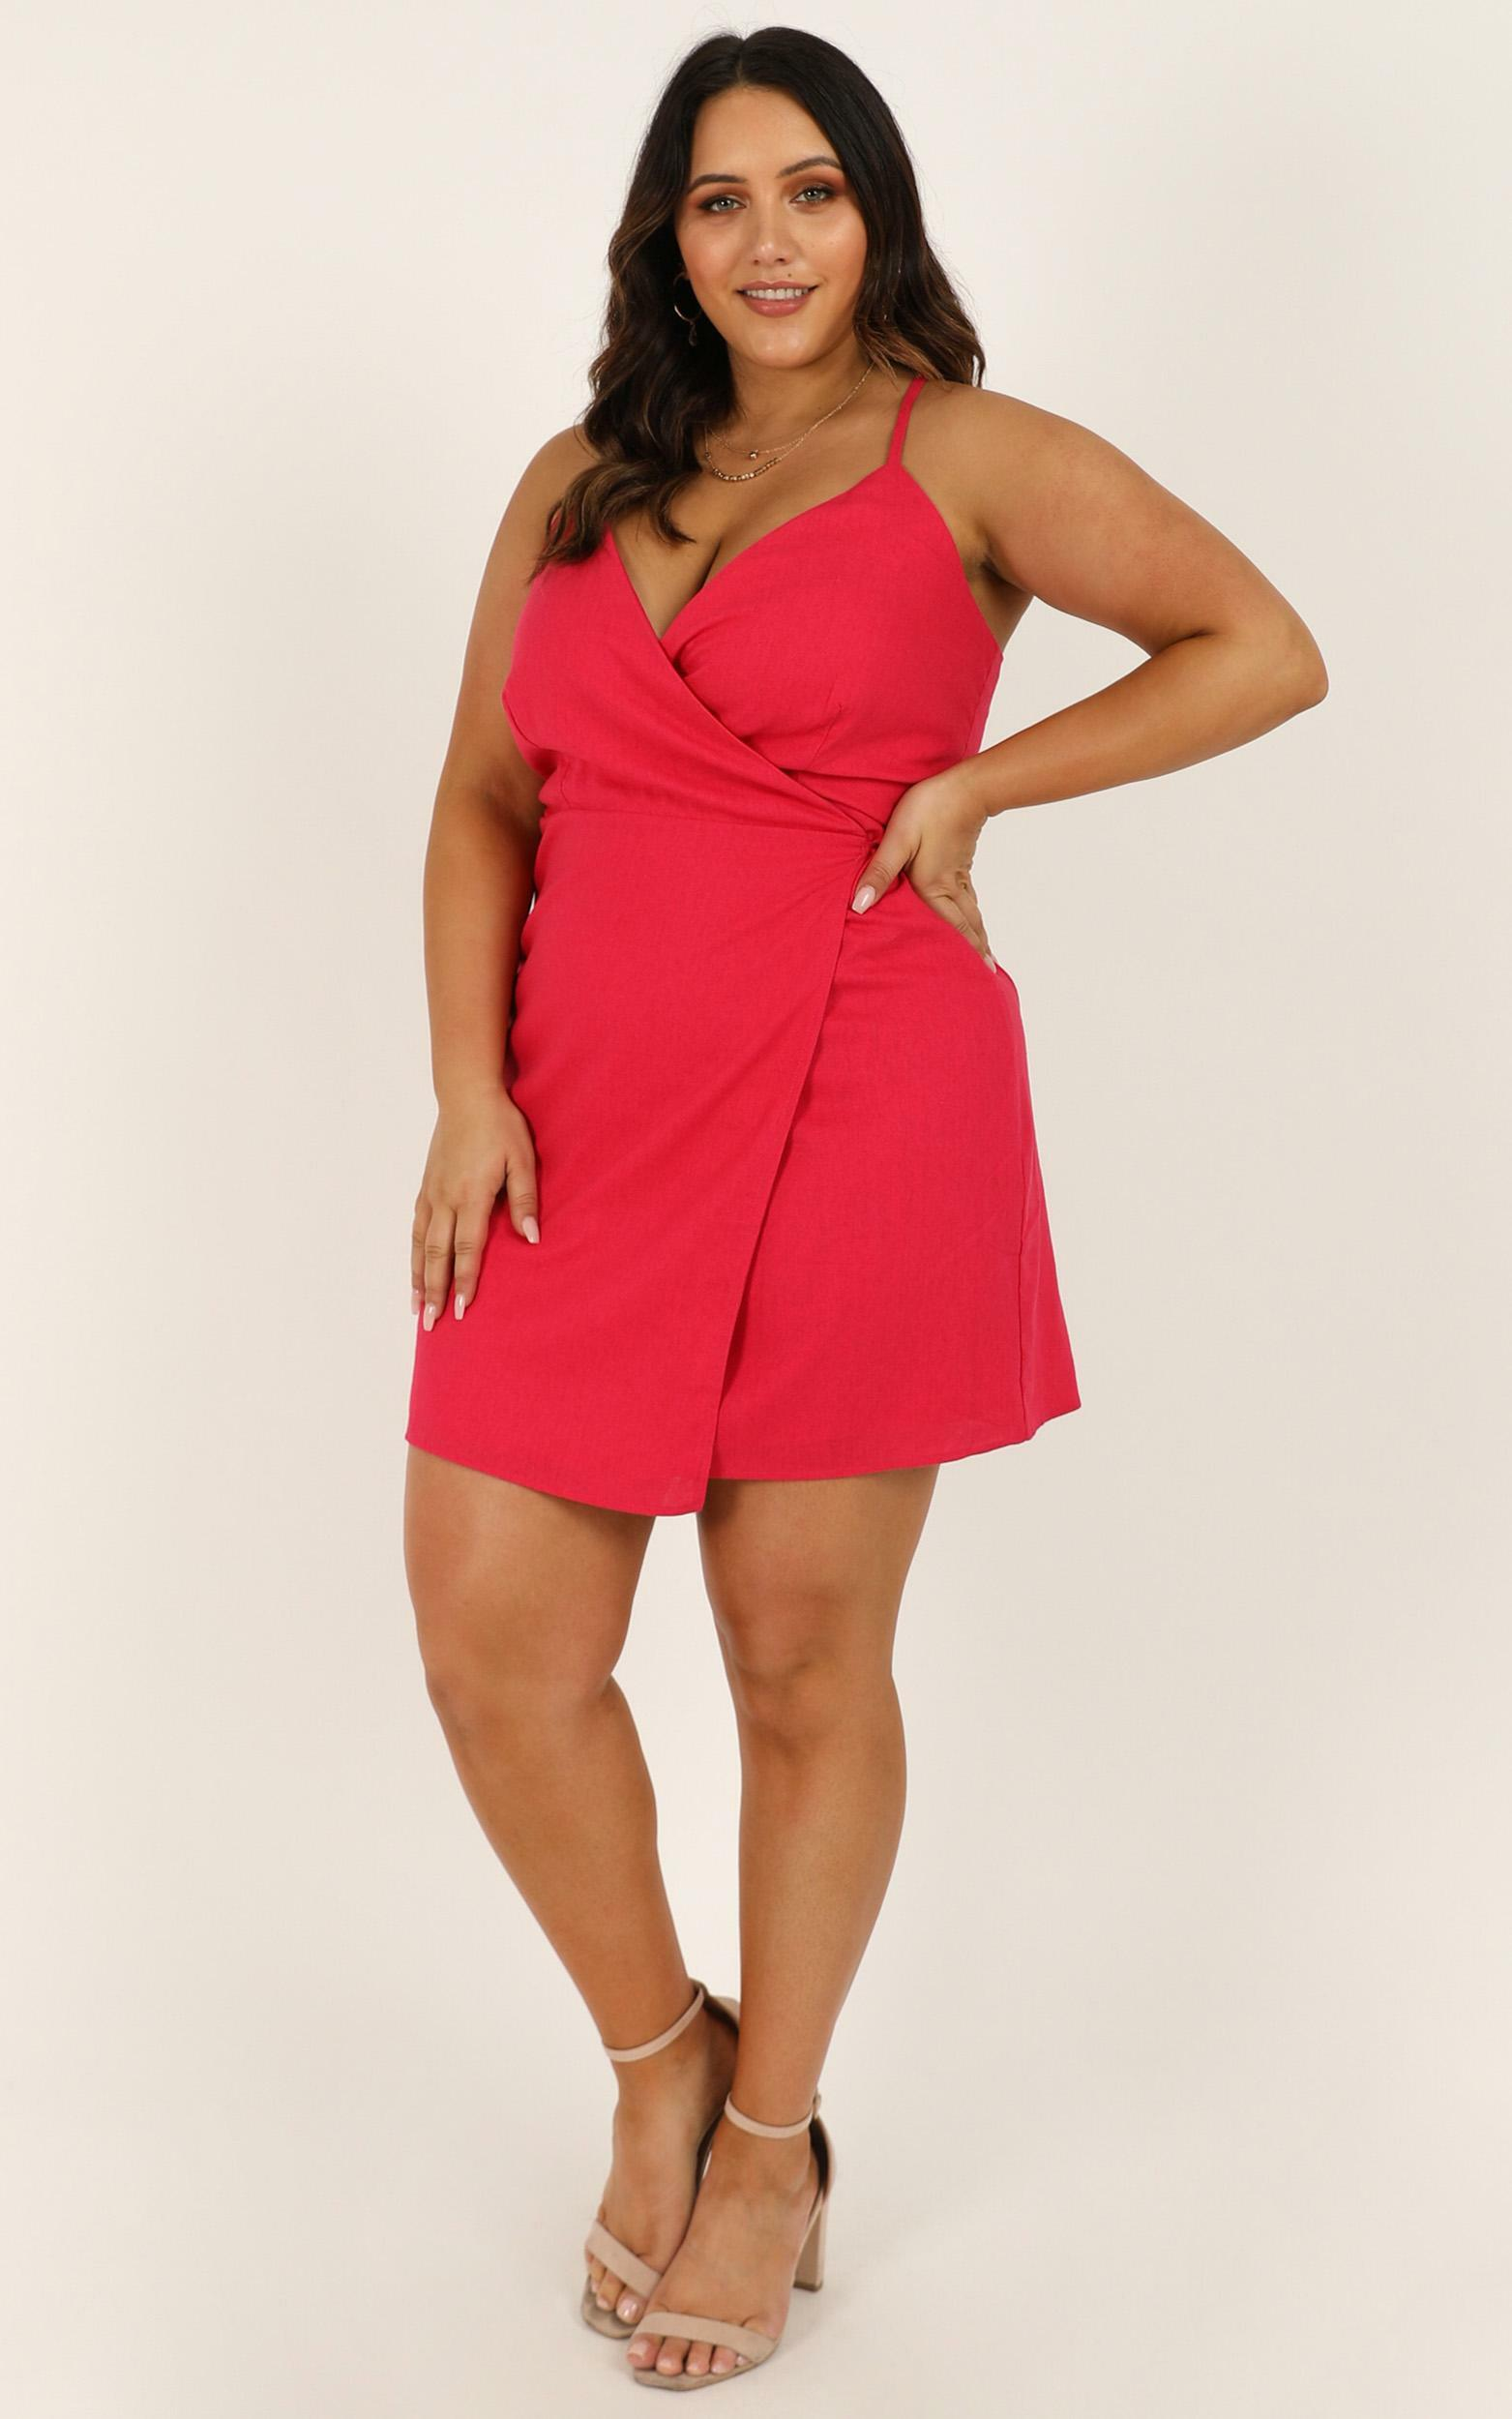 Whisper It Dress in berry linen look - 20 (XXXXL), Pink, hi-res image number null